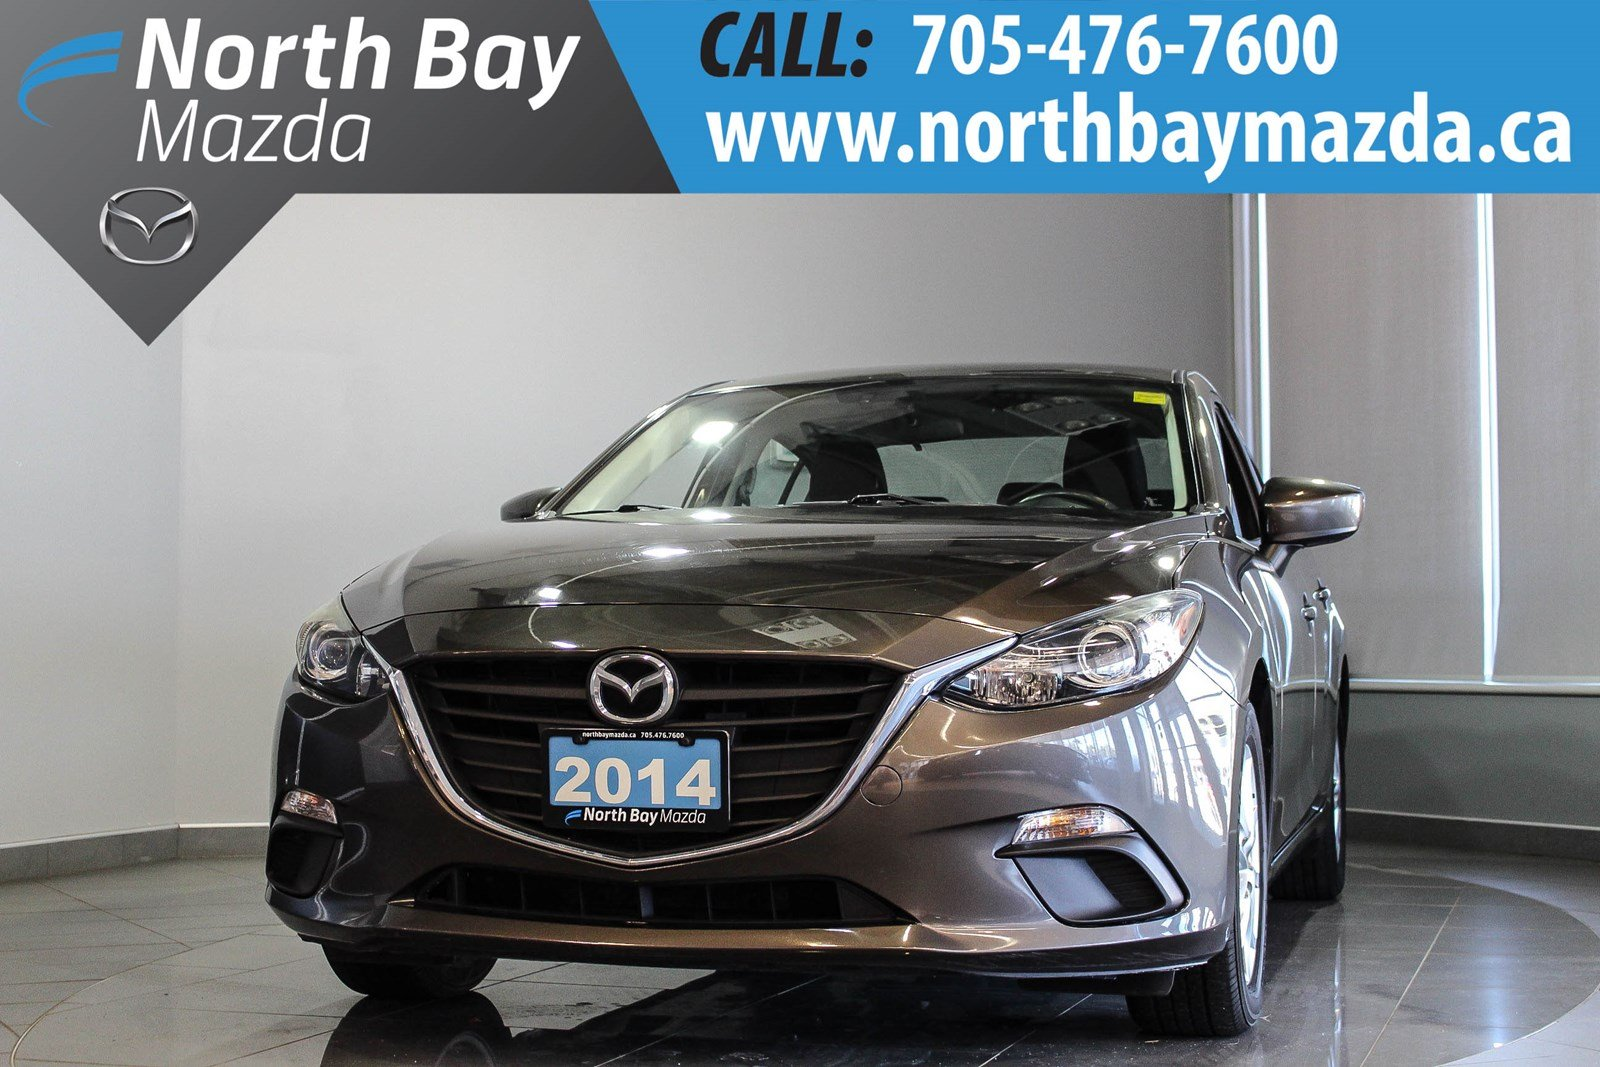 pre owned 2014 mazda mazda3 gs sky with manual transmission rh palladinoautogroup com Mazda 3 2011 Aftermarket Parts Mazda 3 2011 Aftermarket Parts